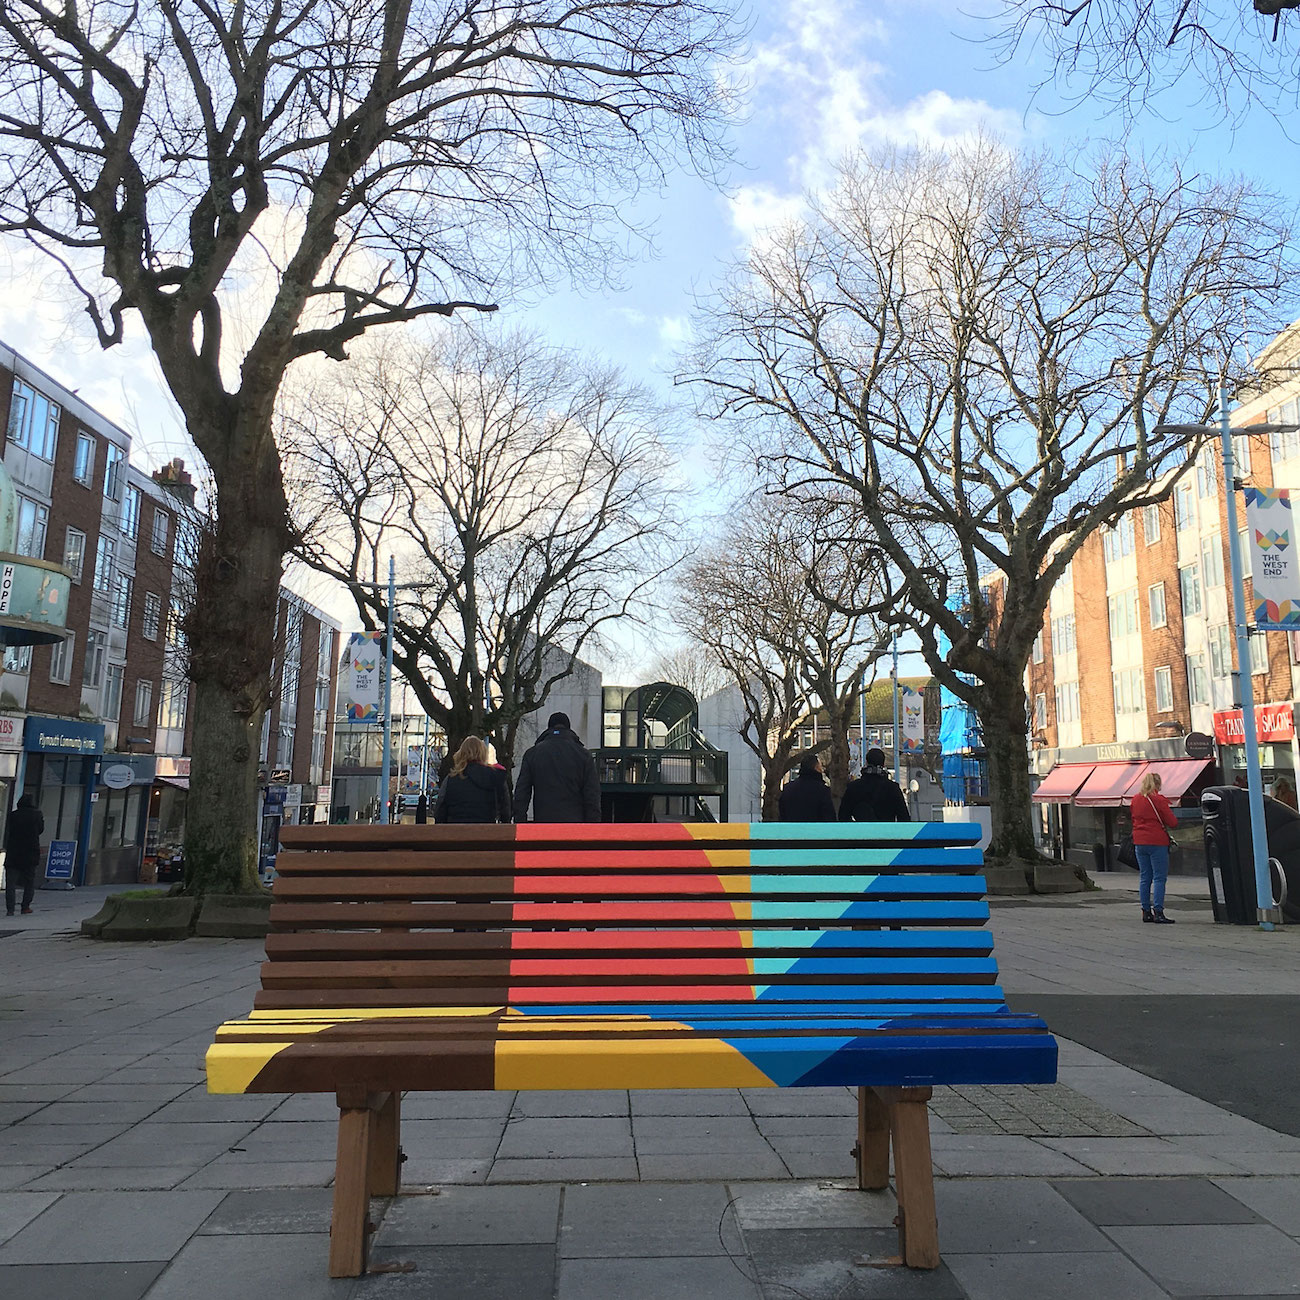 plymouht-west-end-benches-bluestone-360